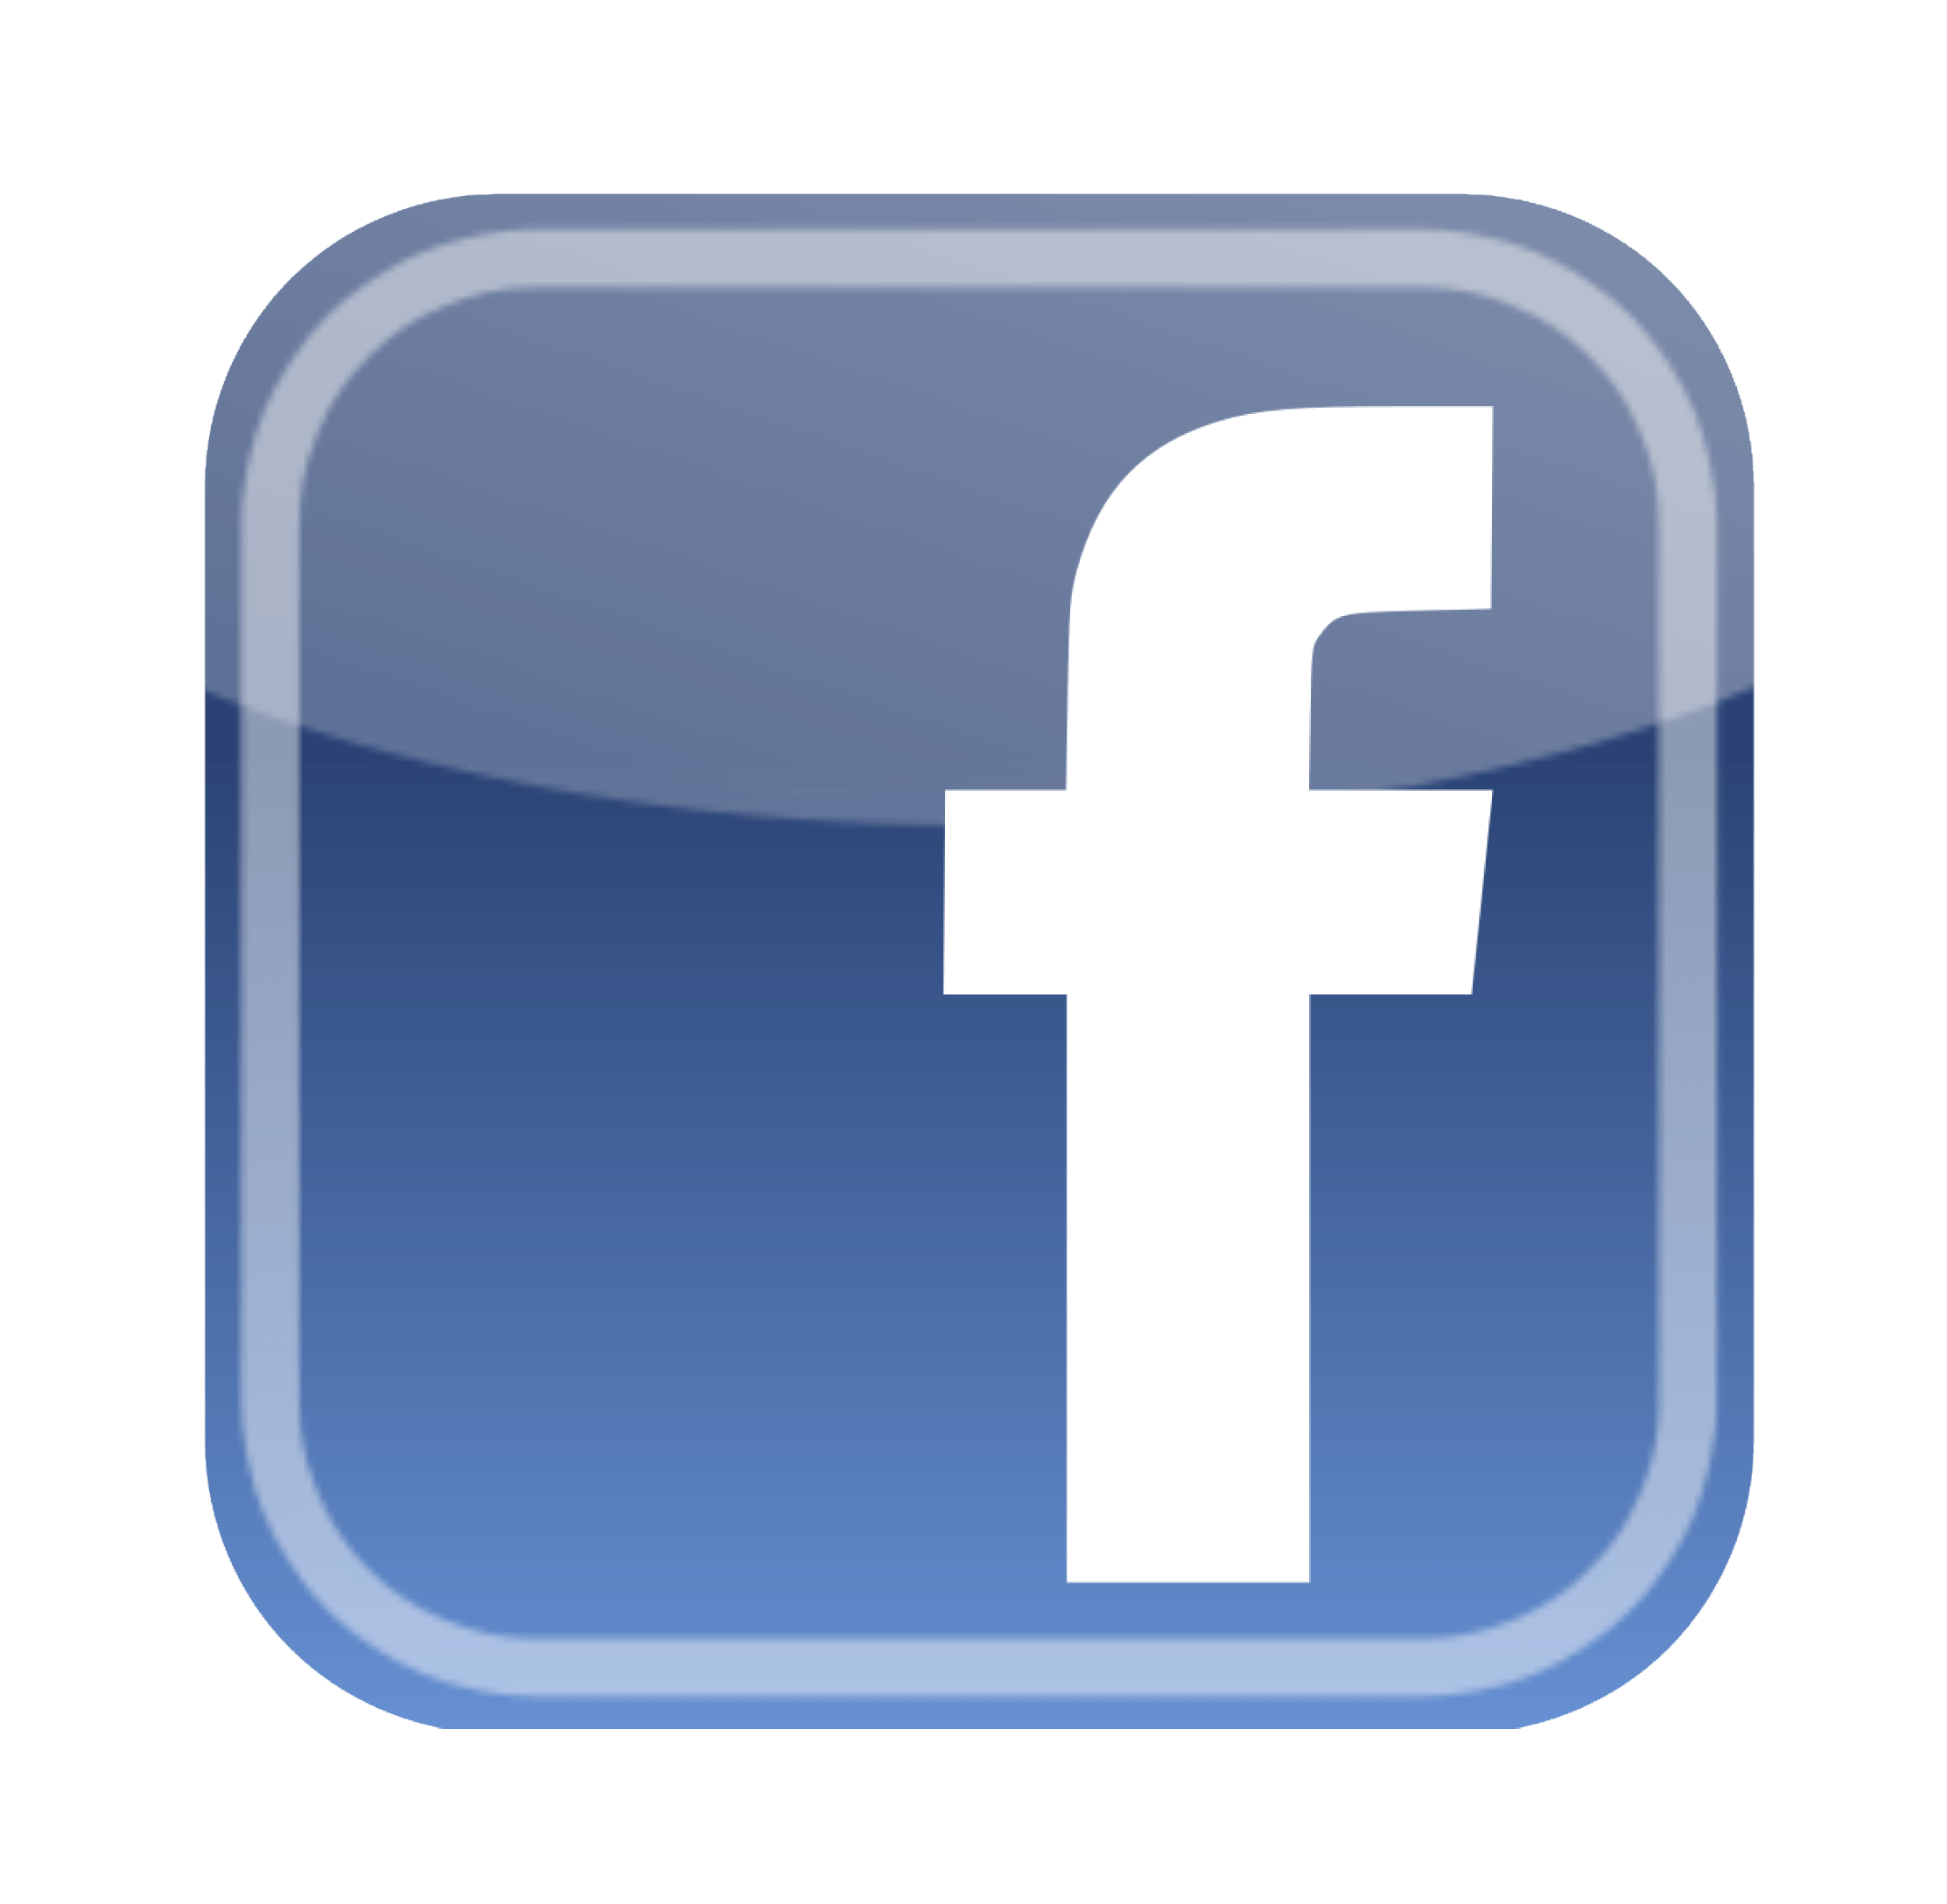 Image result for facebook logo transparent background